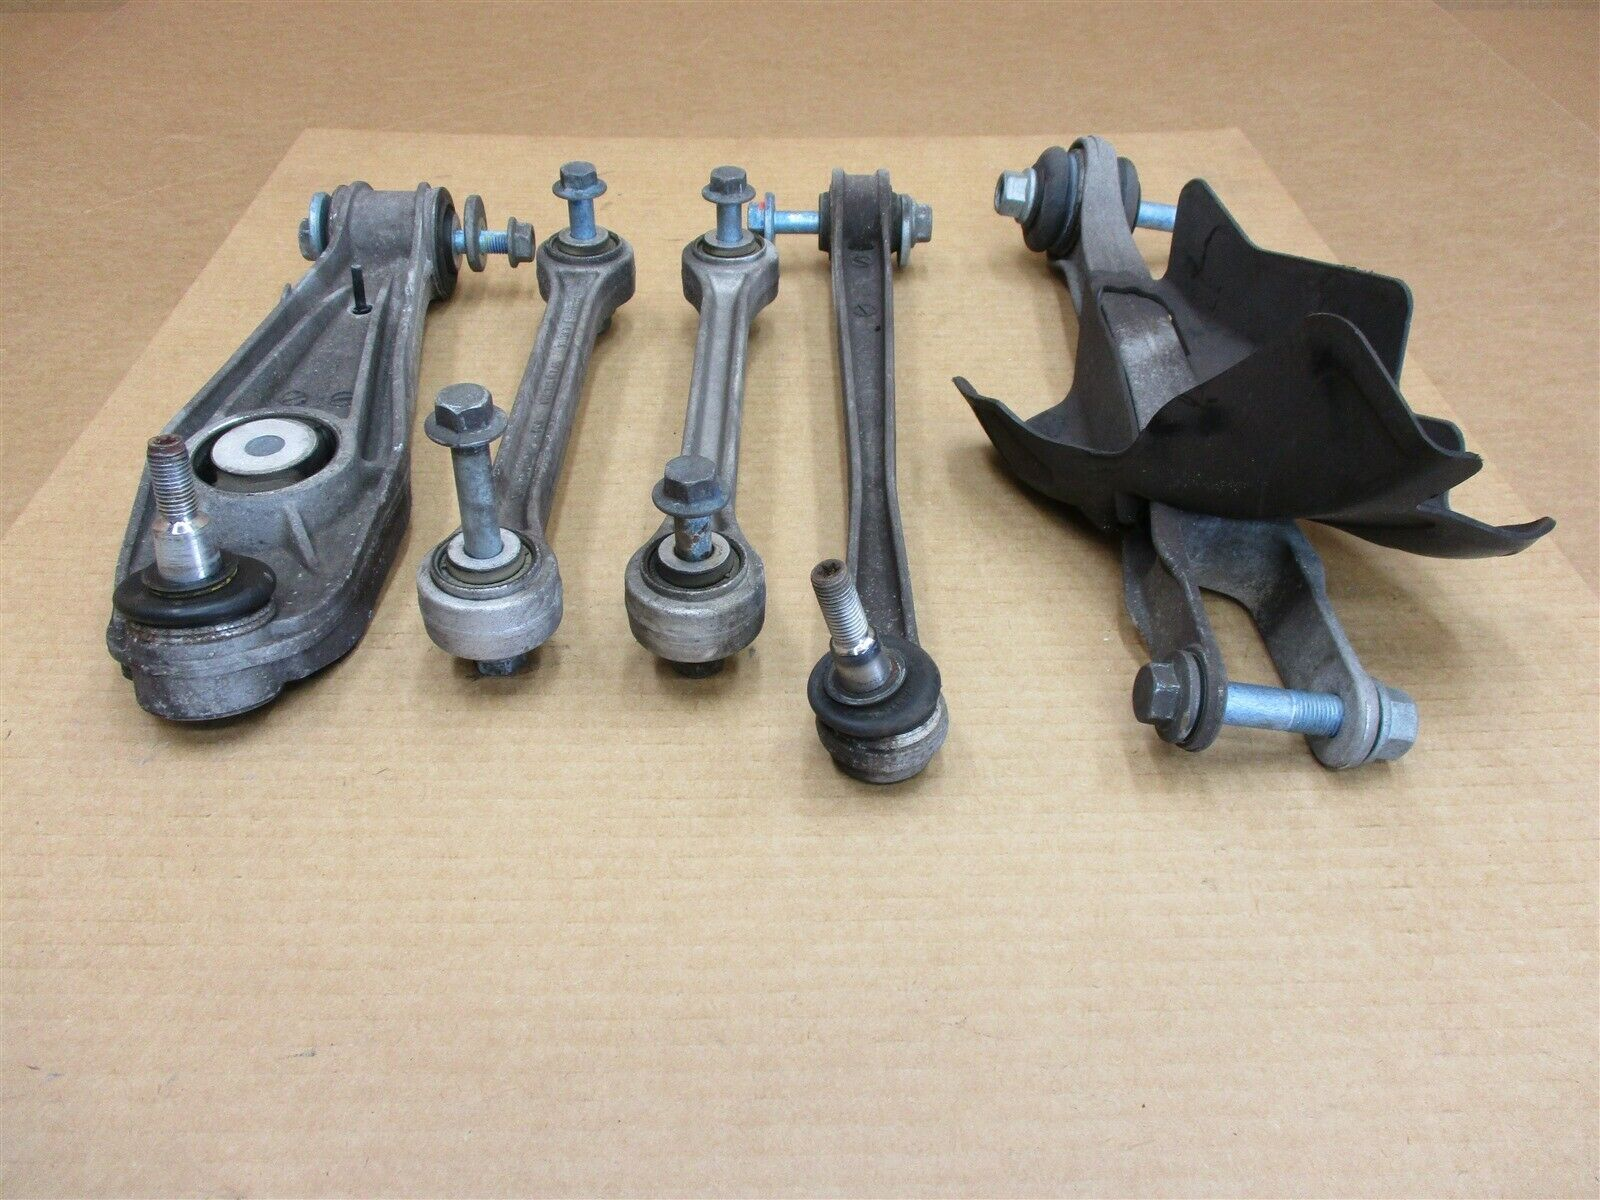 08 Carrera Turbo 911 Porsche 997 Cabrio 5 L REAR CONTROL ARMS 99634134108 30,254